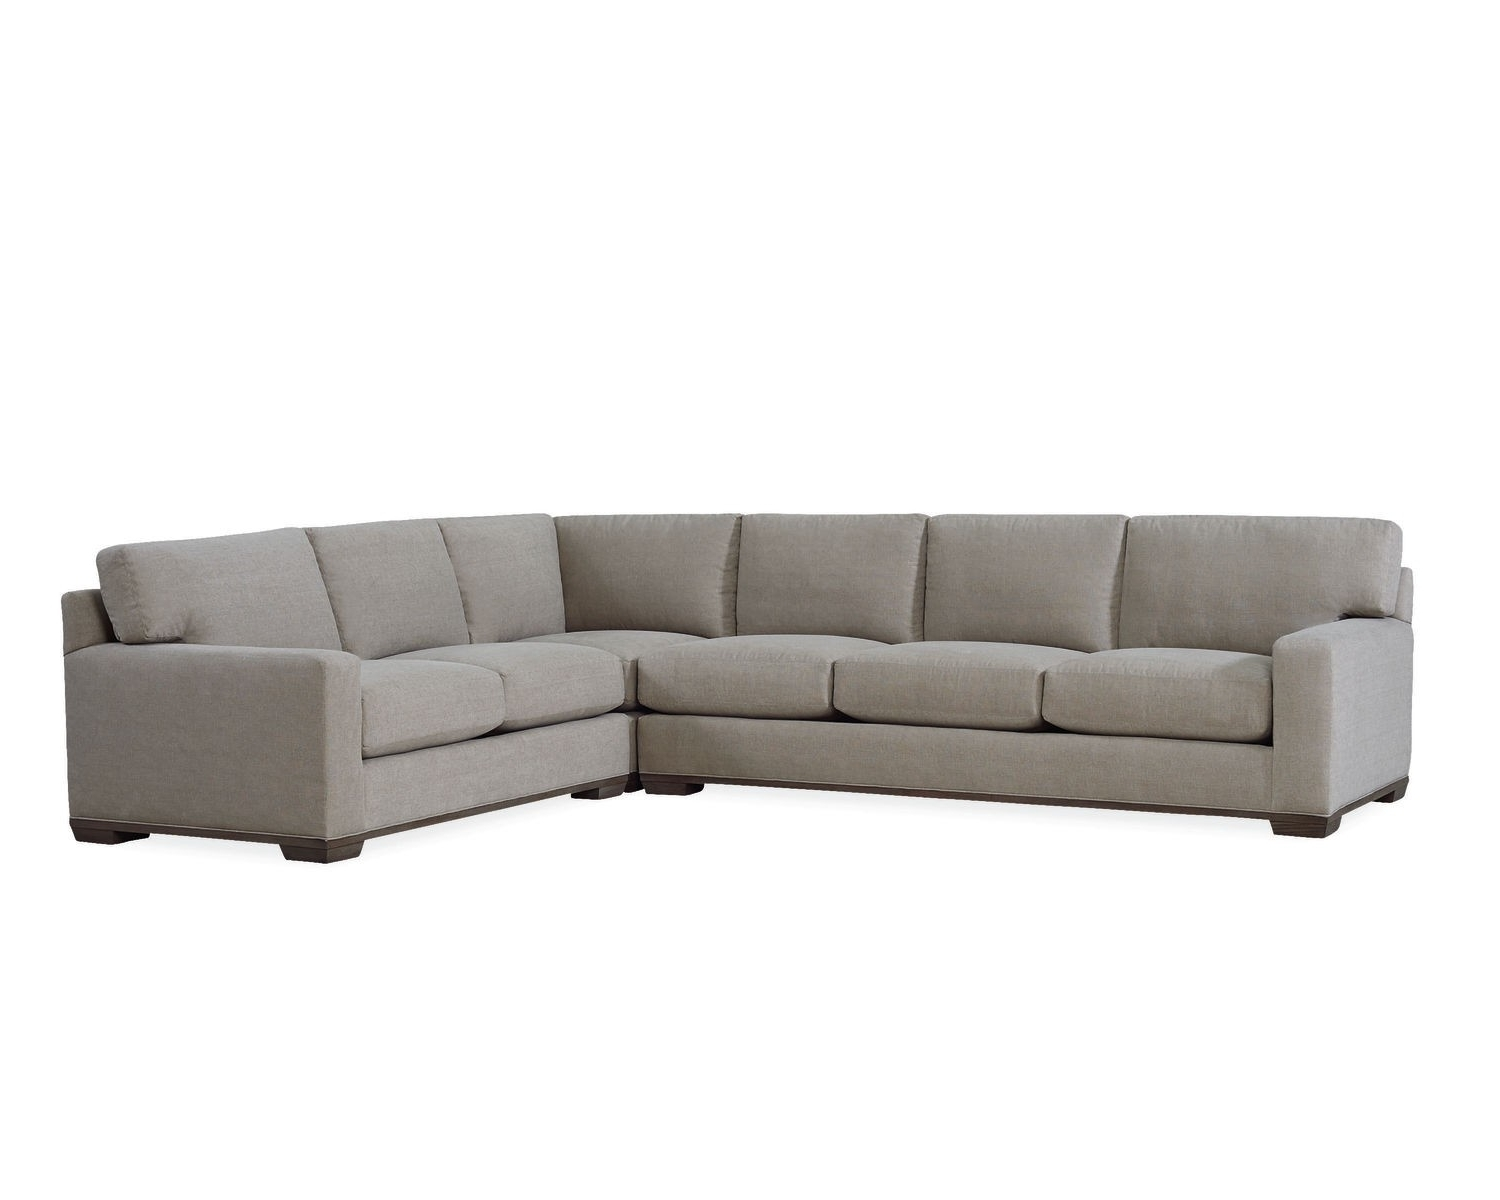 Nashville Chaise Sectional (View 11 of 20)